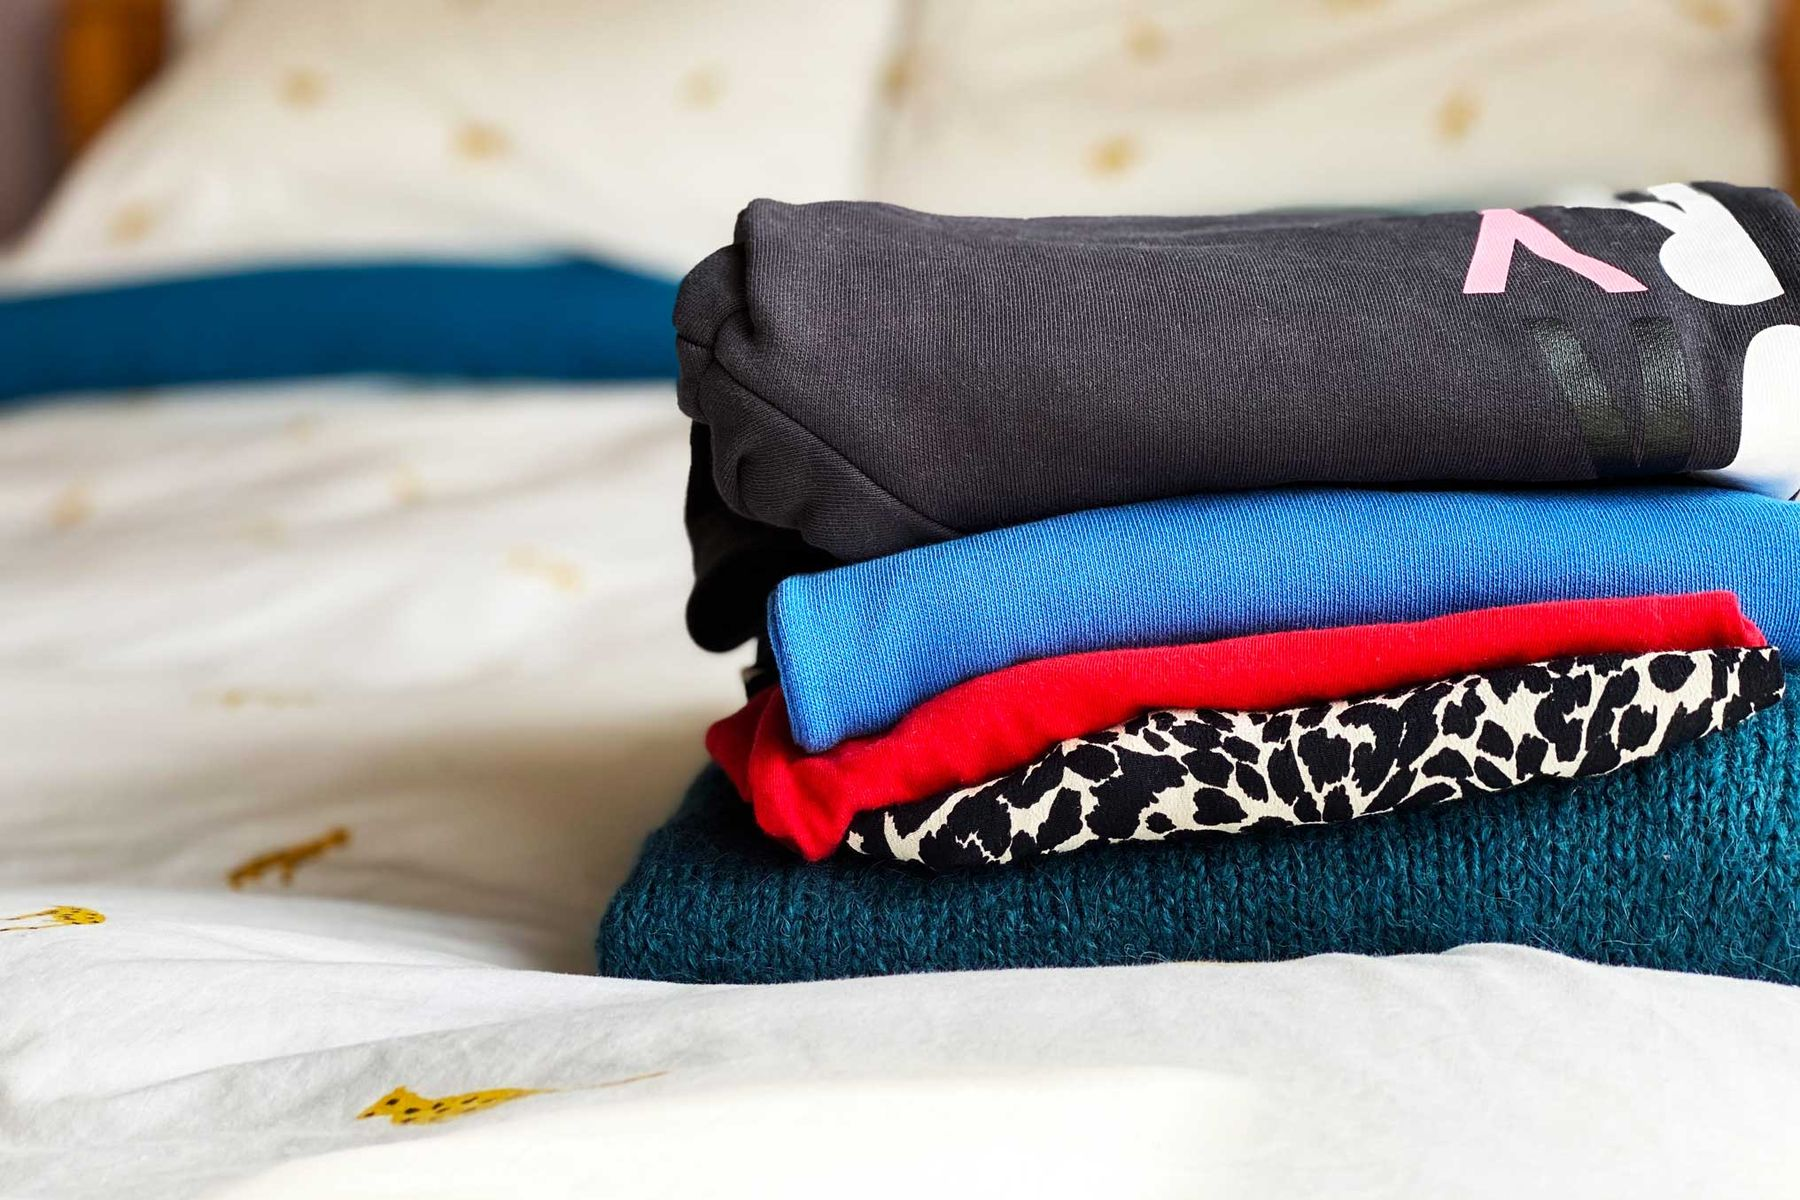 Colourful folded clothing on a bed